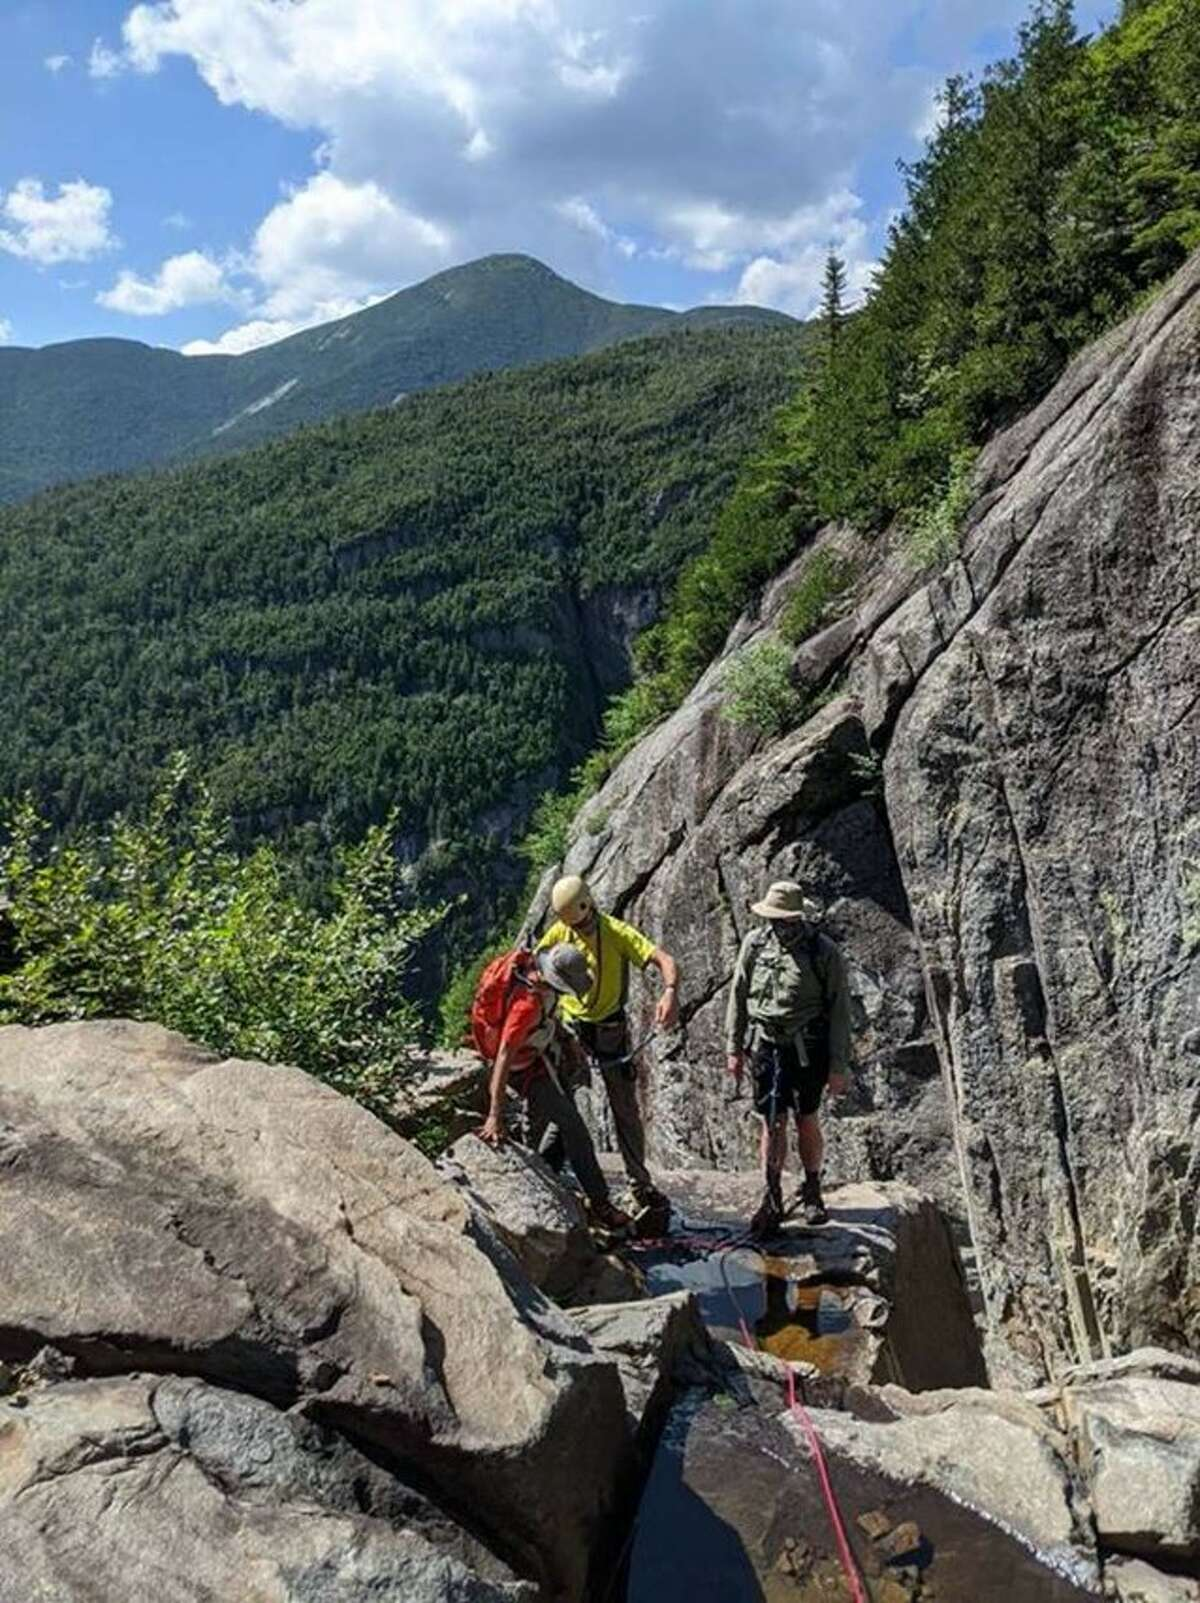 New York State Department of Environmental Conservation forest rangers assist in the rescue of two hikers stuck on Trap Dike on July 18, 2020, in the Adirondacks. (NYS DEC)